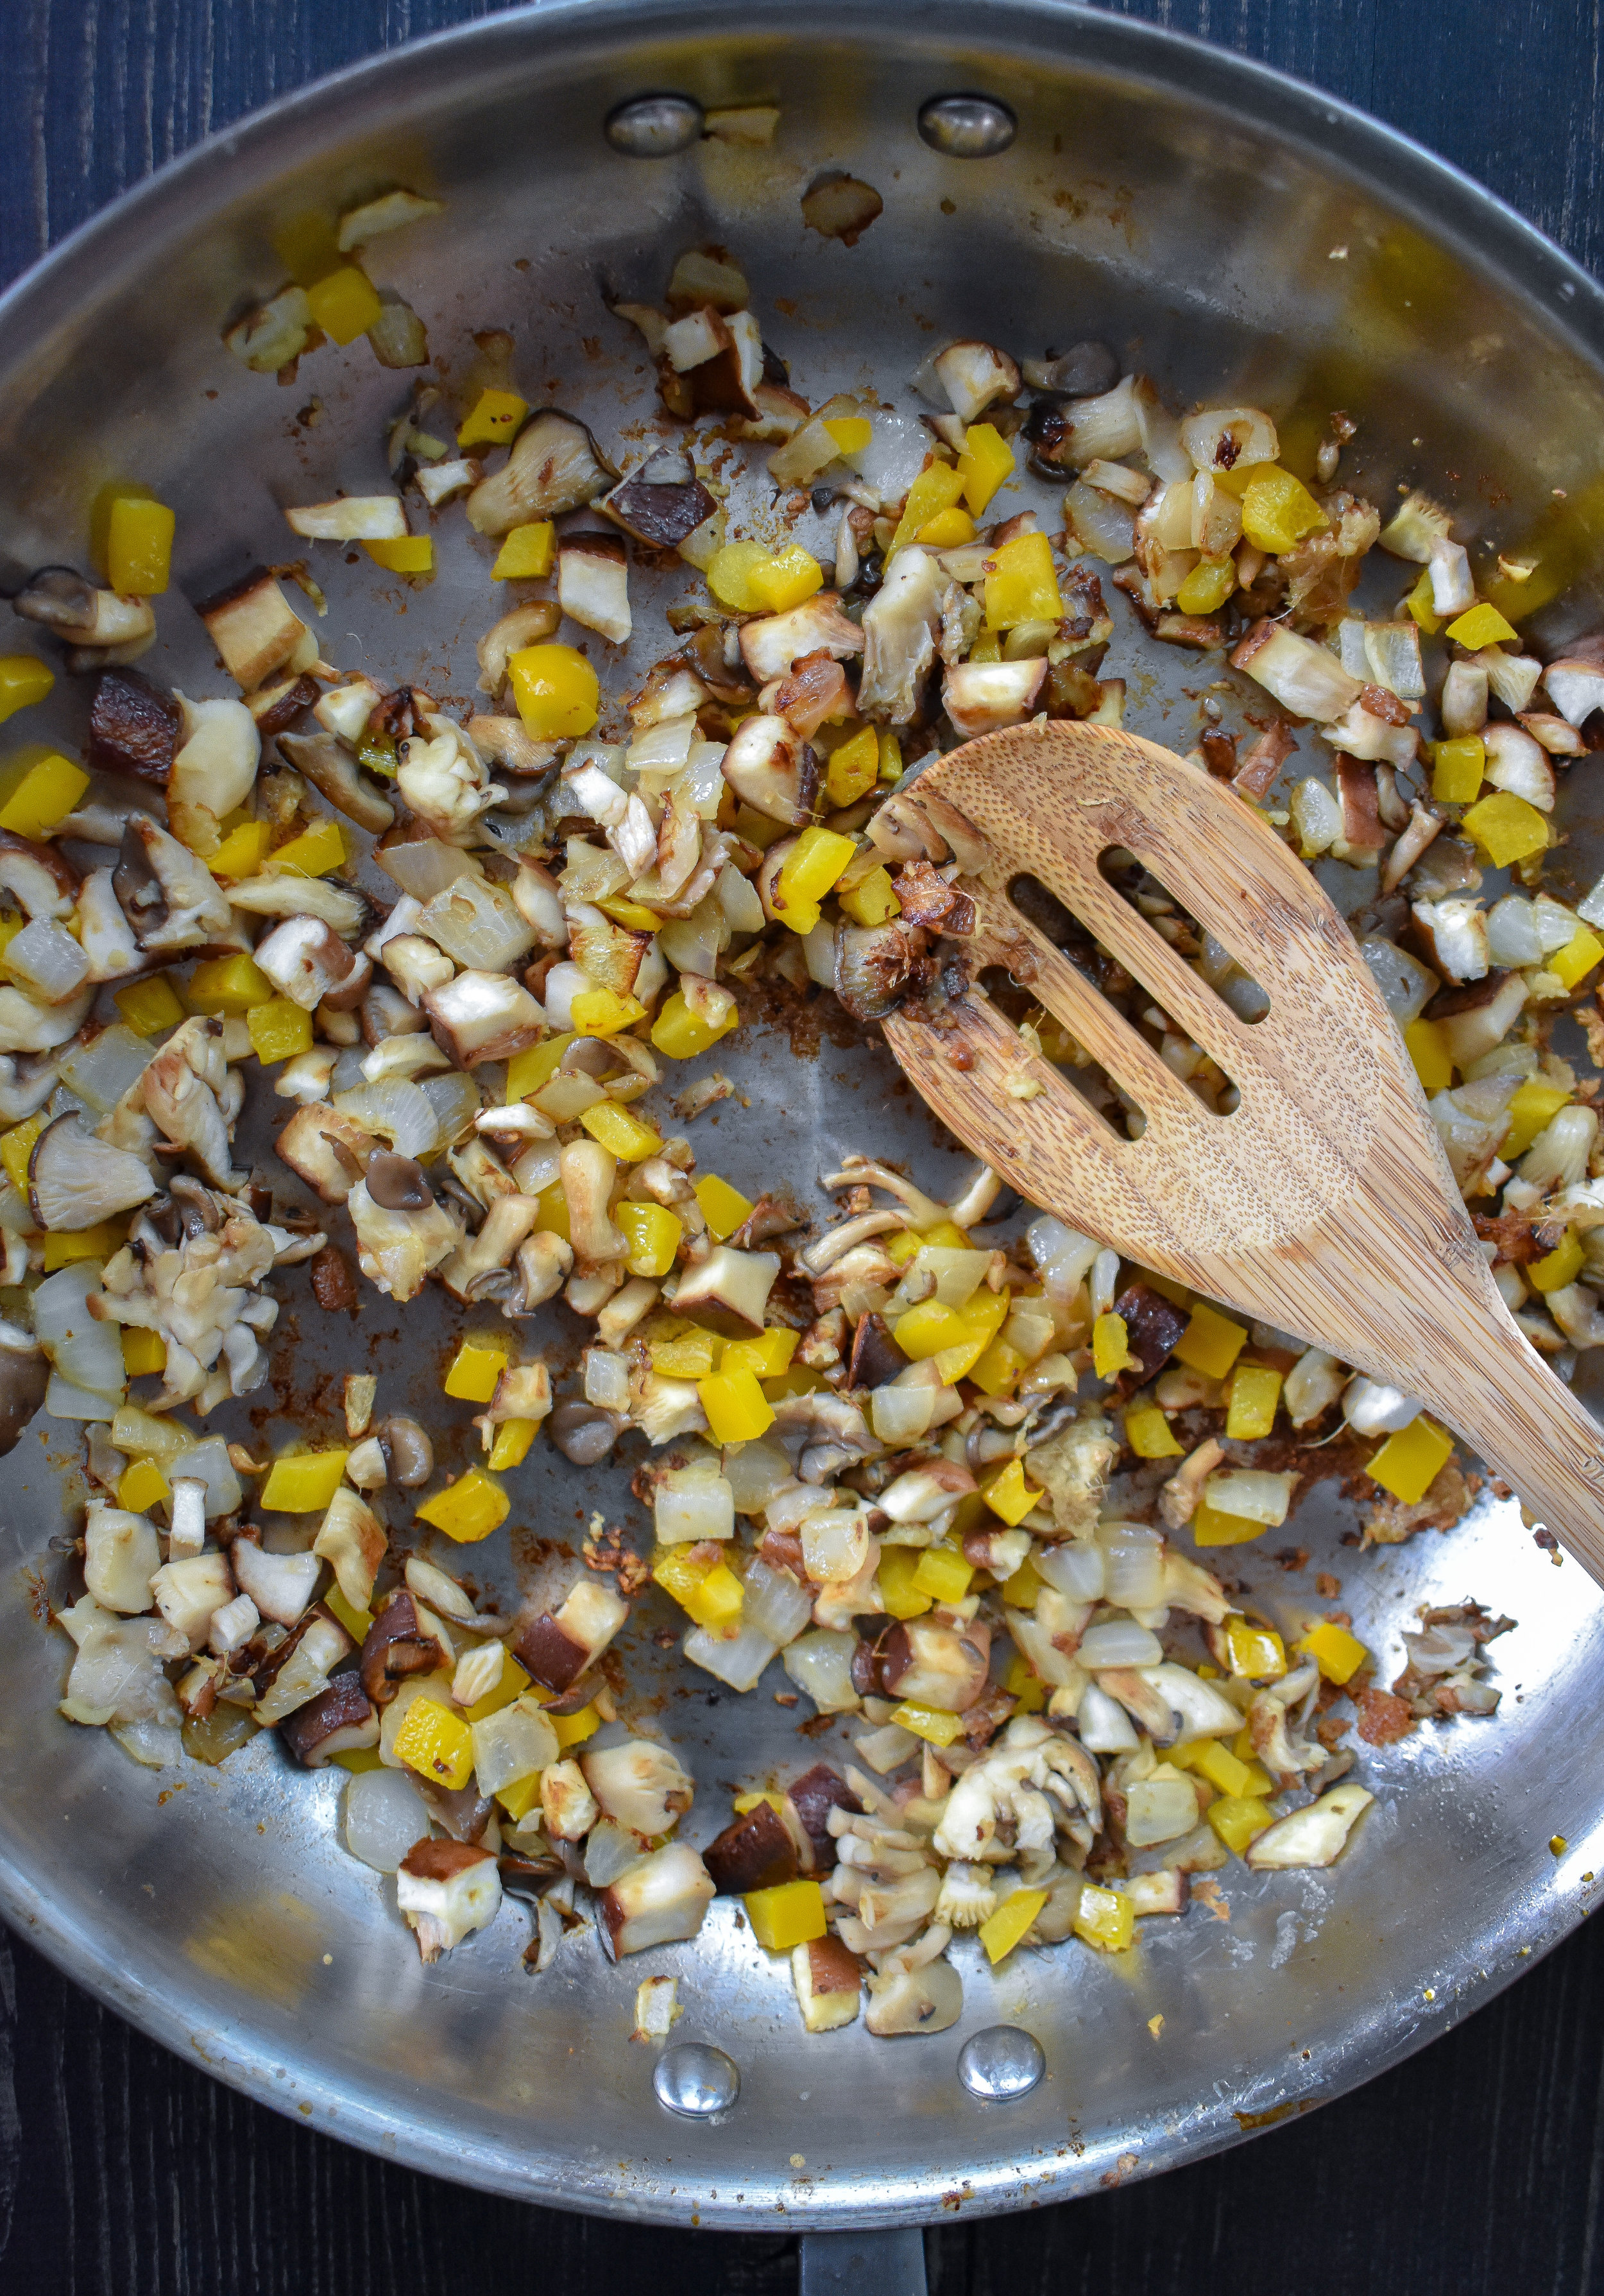 1. To start, add 2 tsp sesame oil + butter for the filling to a large frying pan (could use a wok on medium low heat) over medium heat. Heat for 60 seconds. Add onion, garlic, and ginger. Cook for 4 minutes. Add mushrooms, peppers, salt, pepper, and fennel. Cook for another 3-4 minutes until mushrooms start to soften.